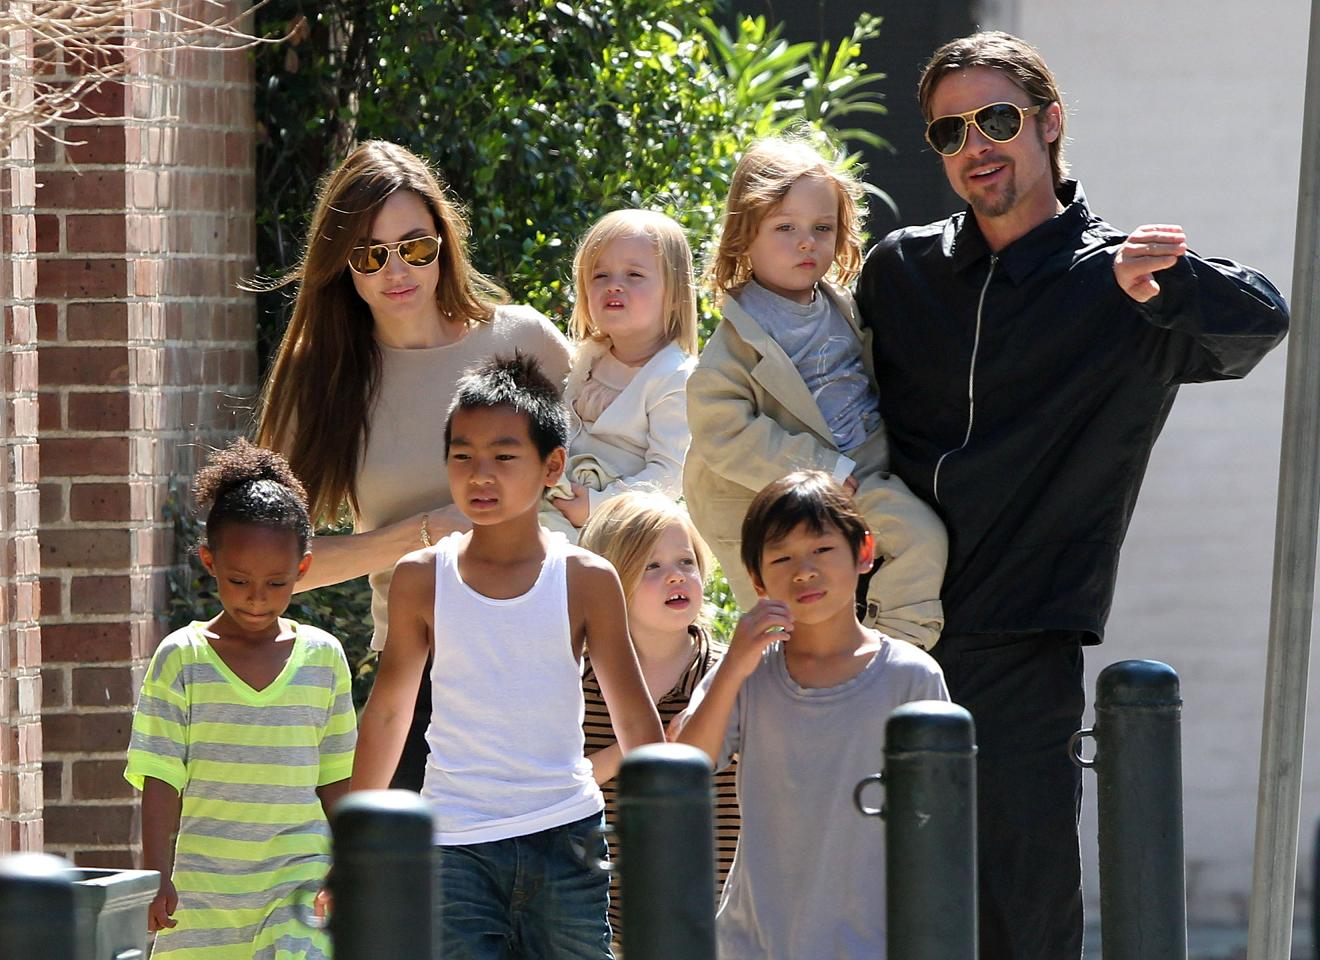 #7006830 The Jolie-Pitt family headed out in New Orleans, Louisiana to do some grocery shopping at a local market on March 20, 2011. Angelina has brought all six children to visit their dad Brad Pitt while he works on his latest project